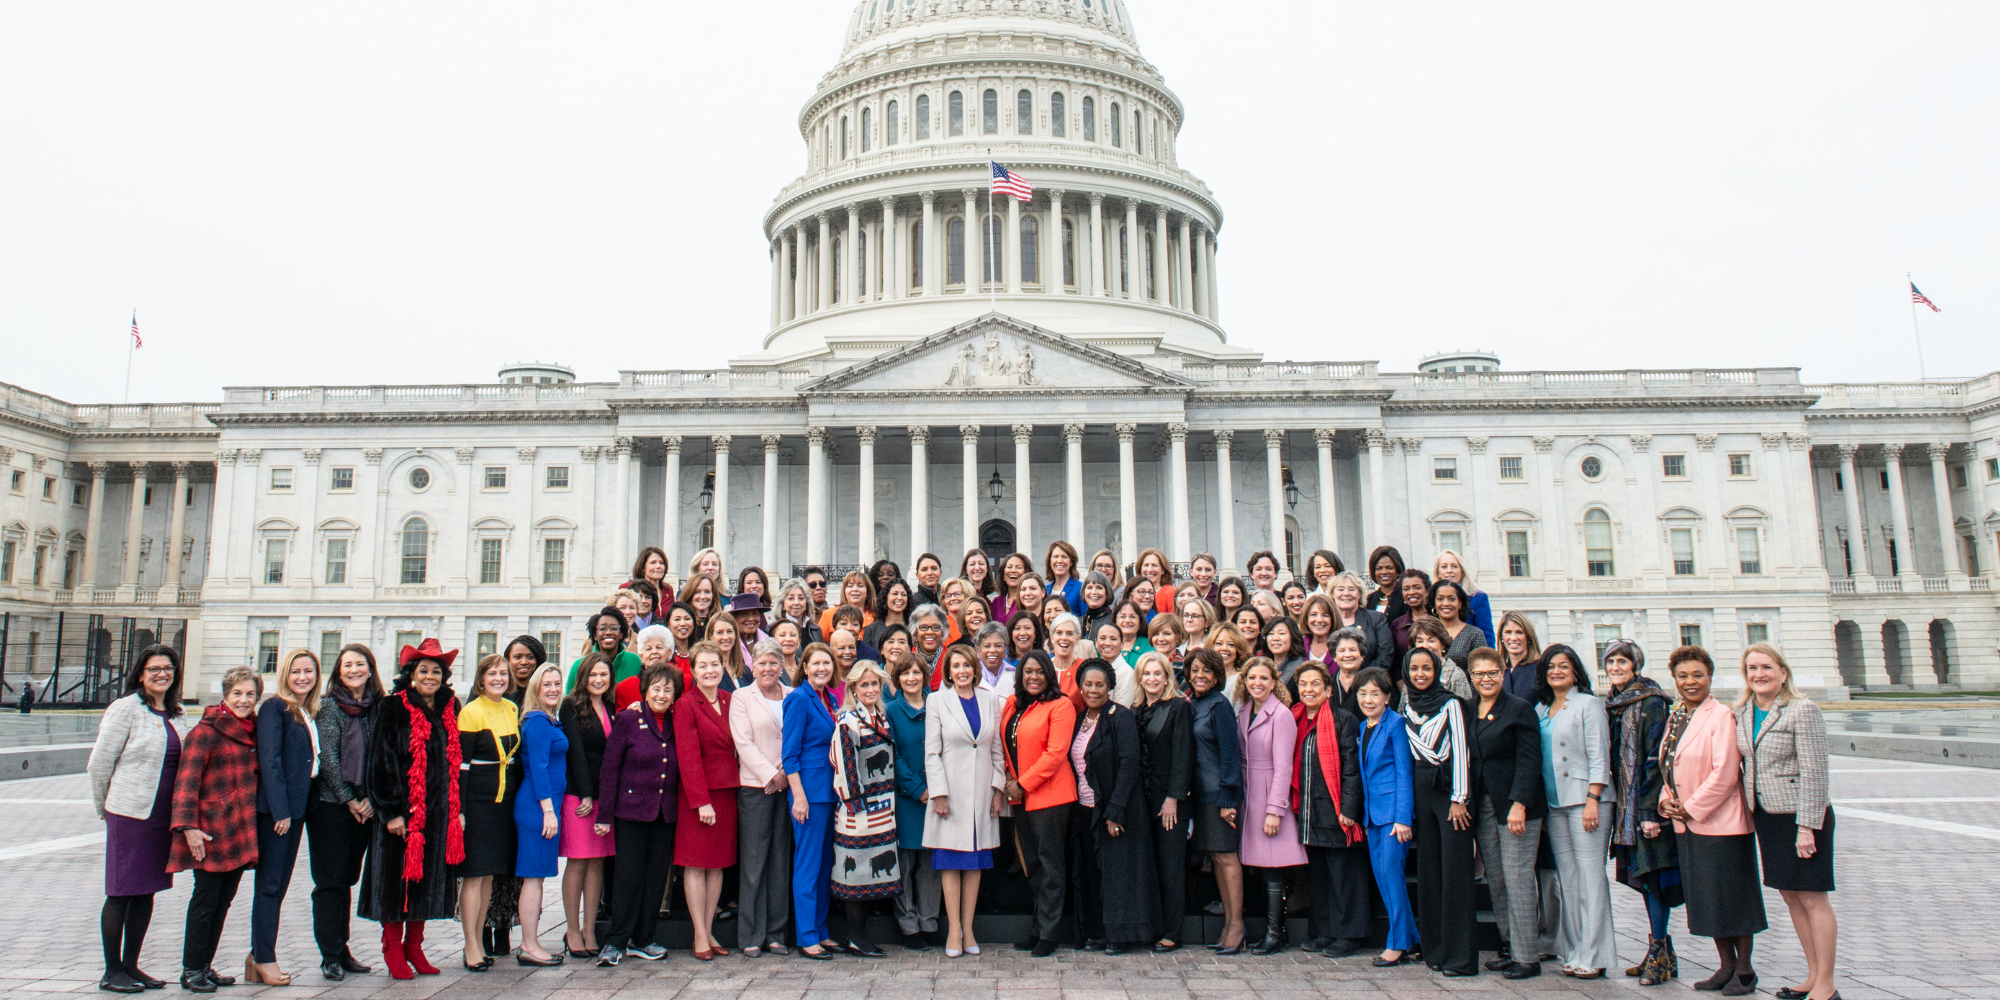 Women in the 116th Conrgess